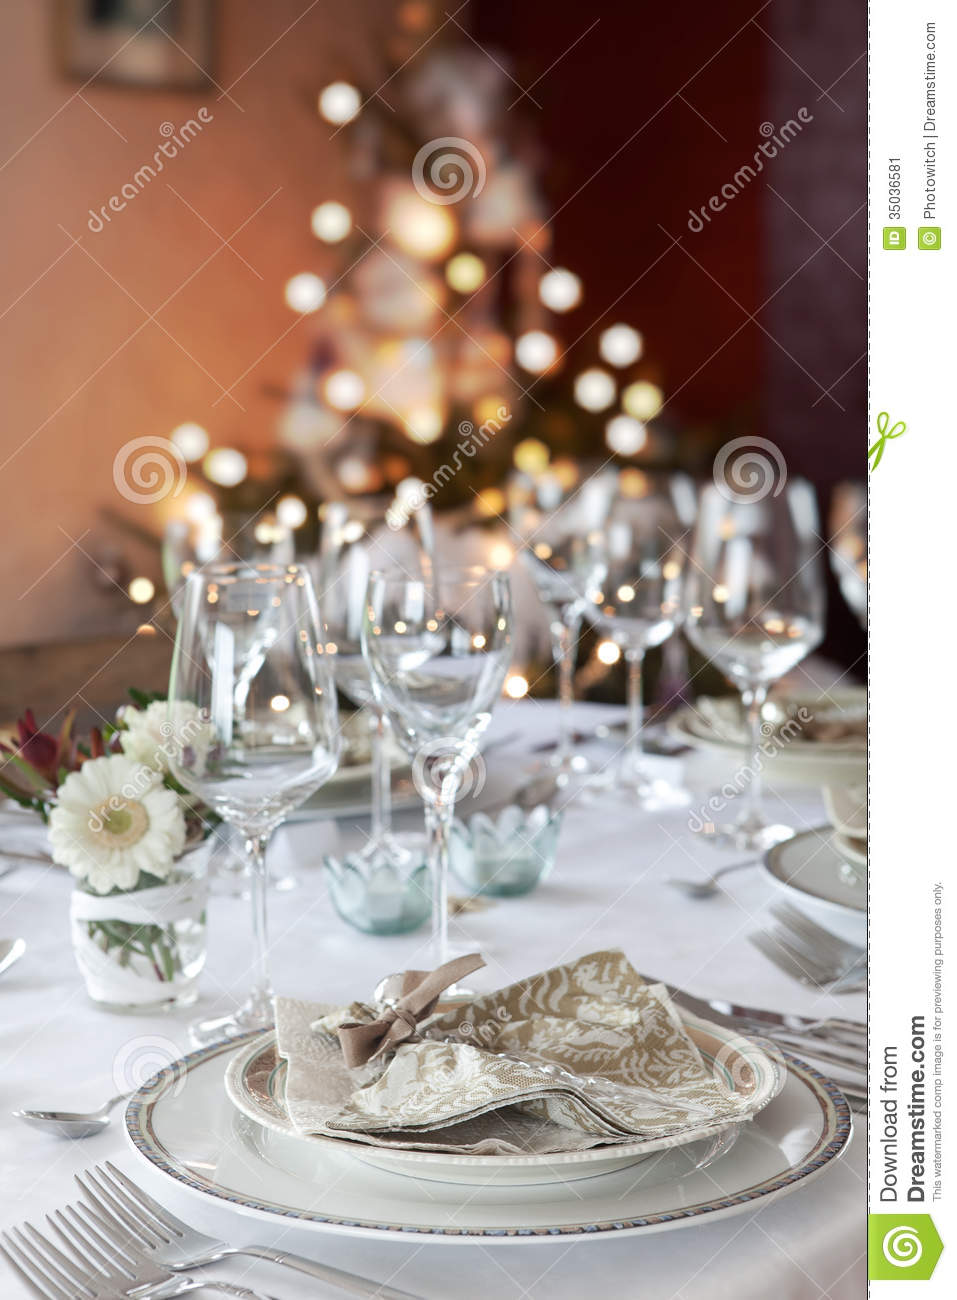 Silver and white christmas table decorations - Christmas Dinner Table In White